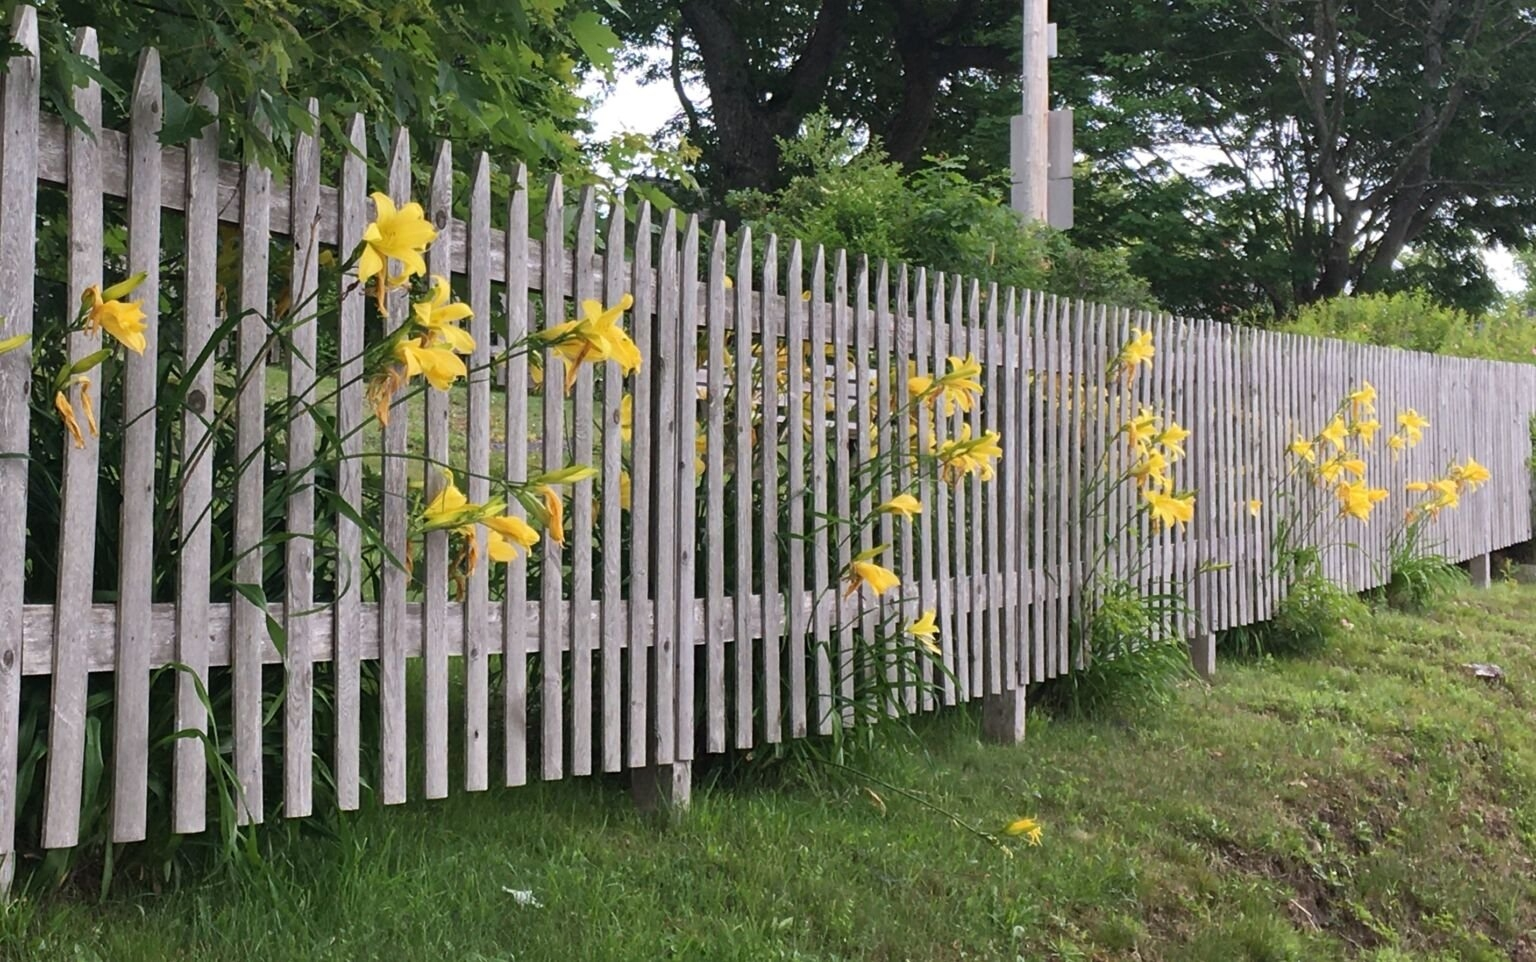 Flowers growing through a fence.